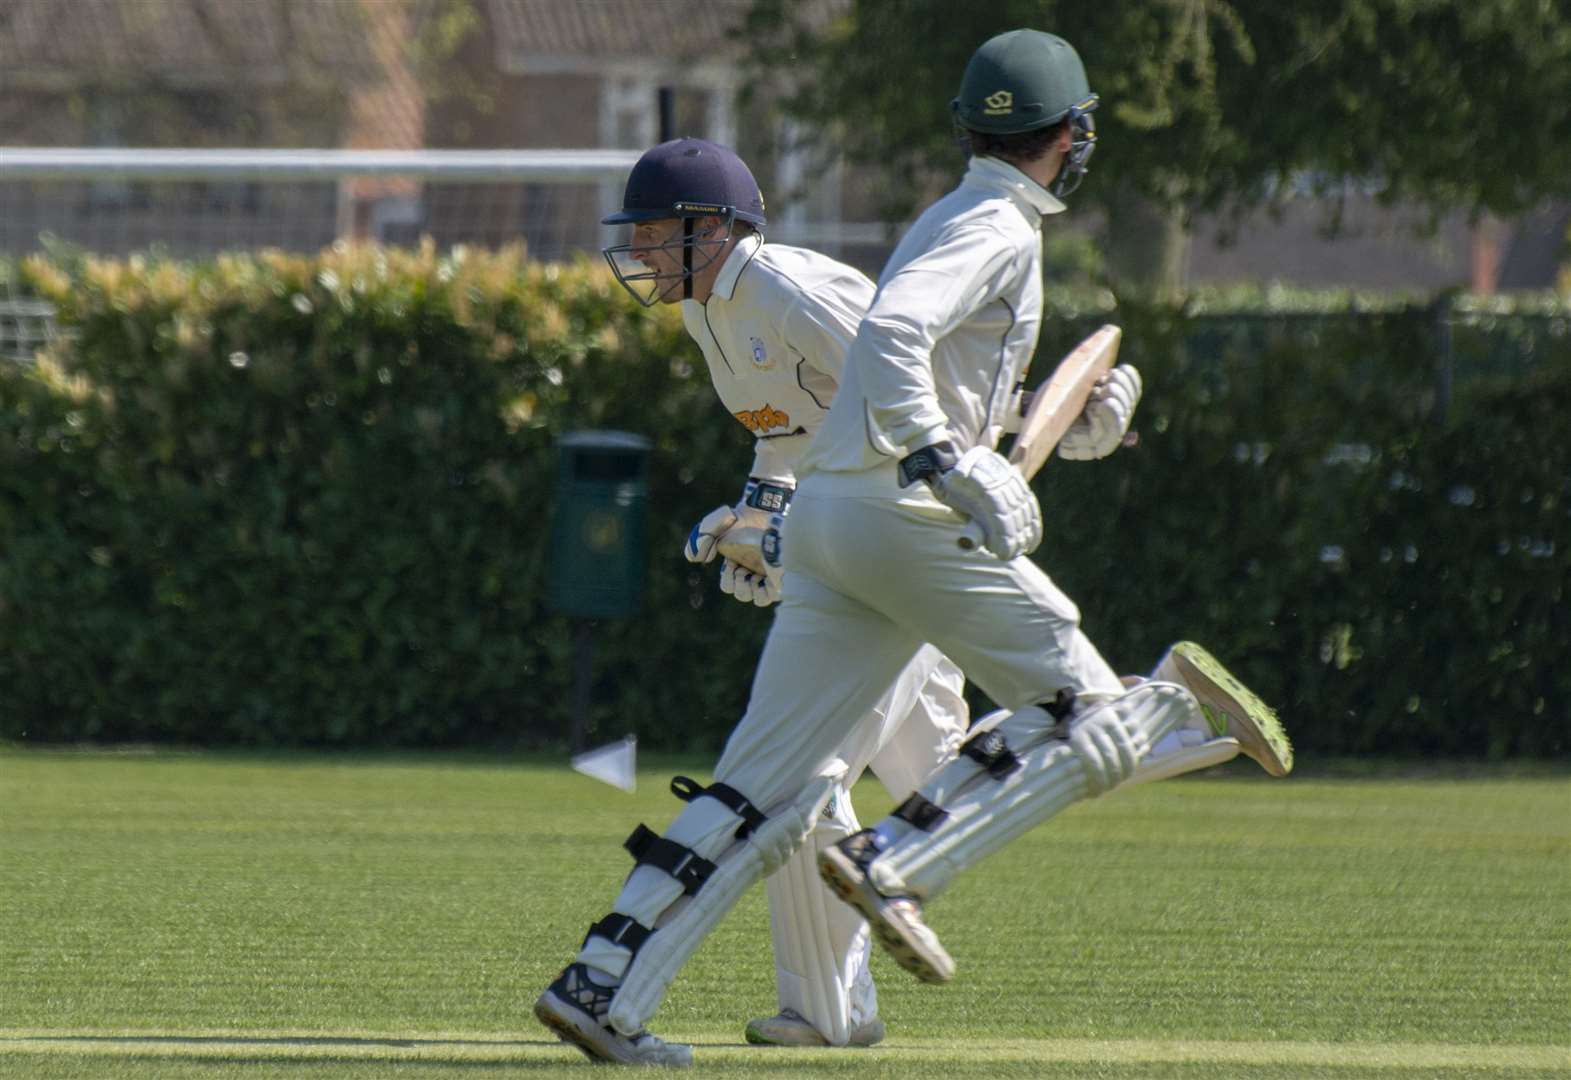 CRICKET: This weekend's fixtures